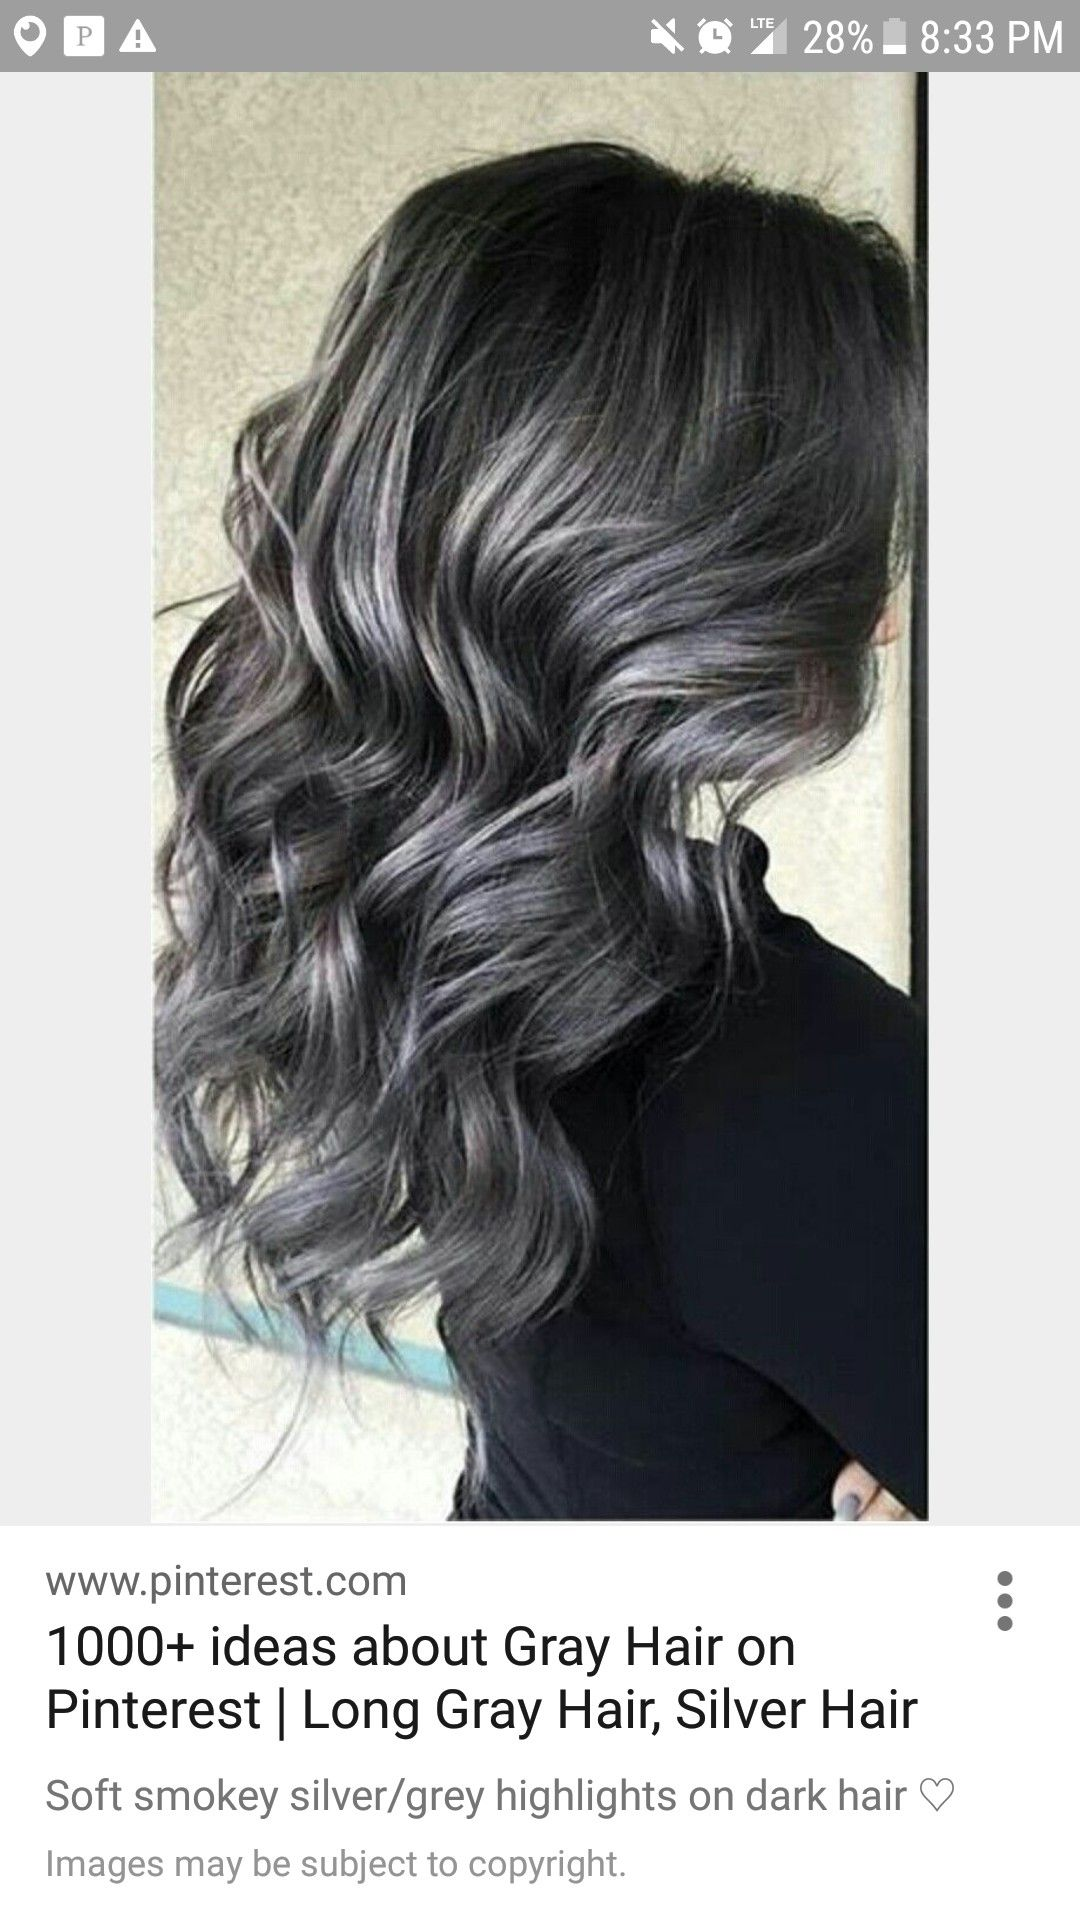 Pin By Deana Garcia On Hair Pinterest Hair Coloring Hair Style